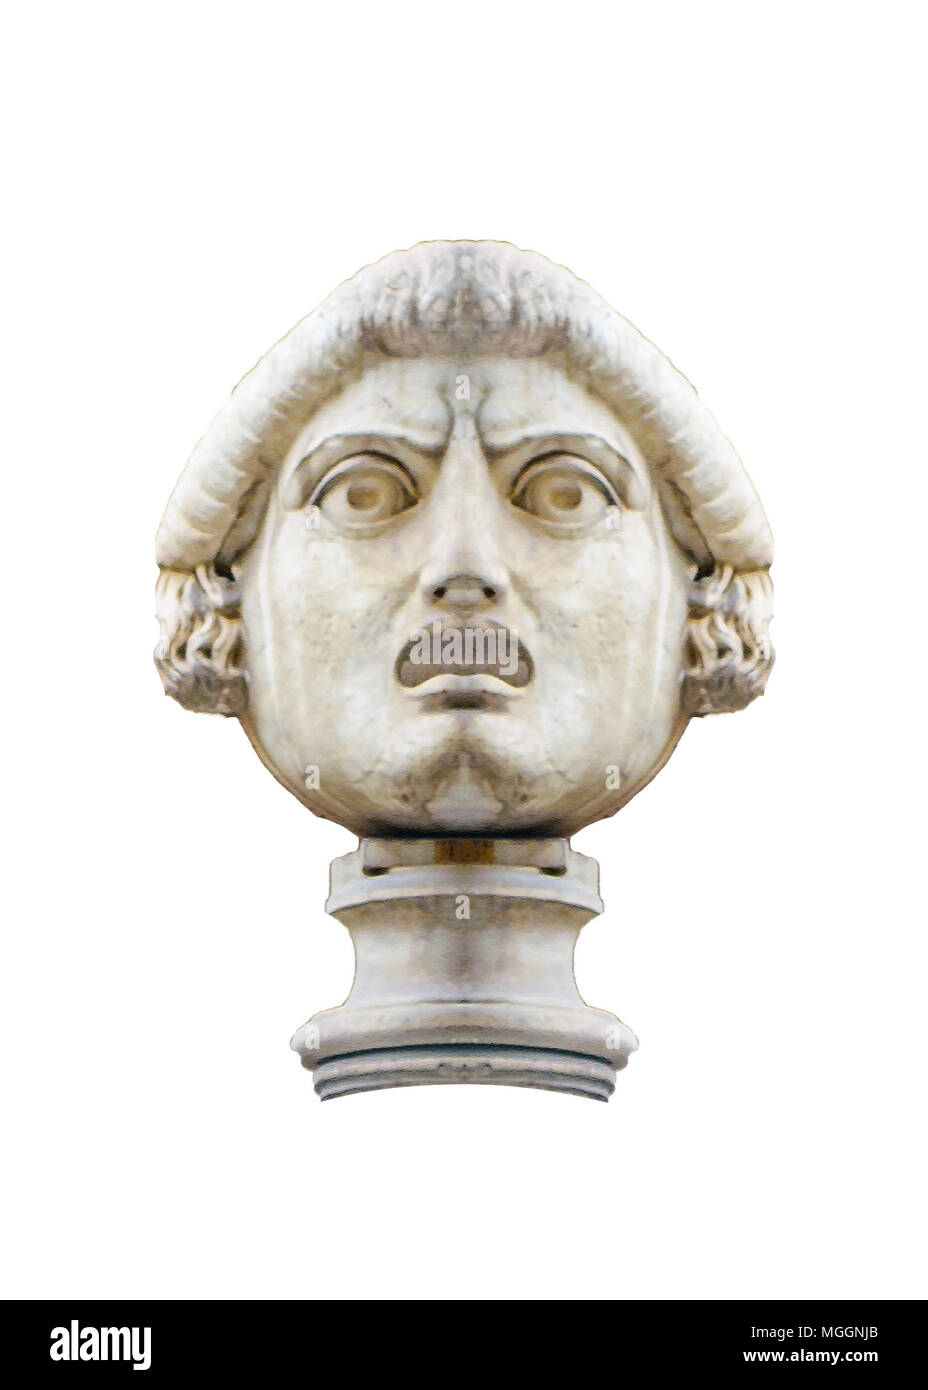 Antique sculpture man head with angry expression isolated photo - Stock Image